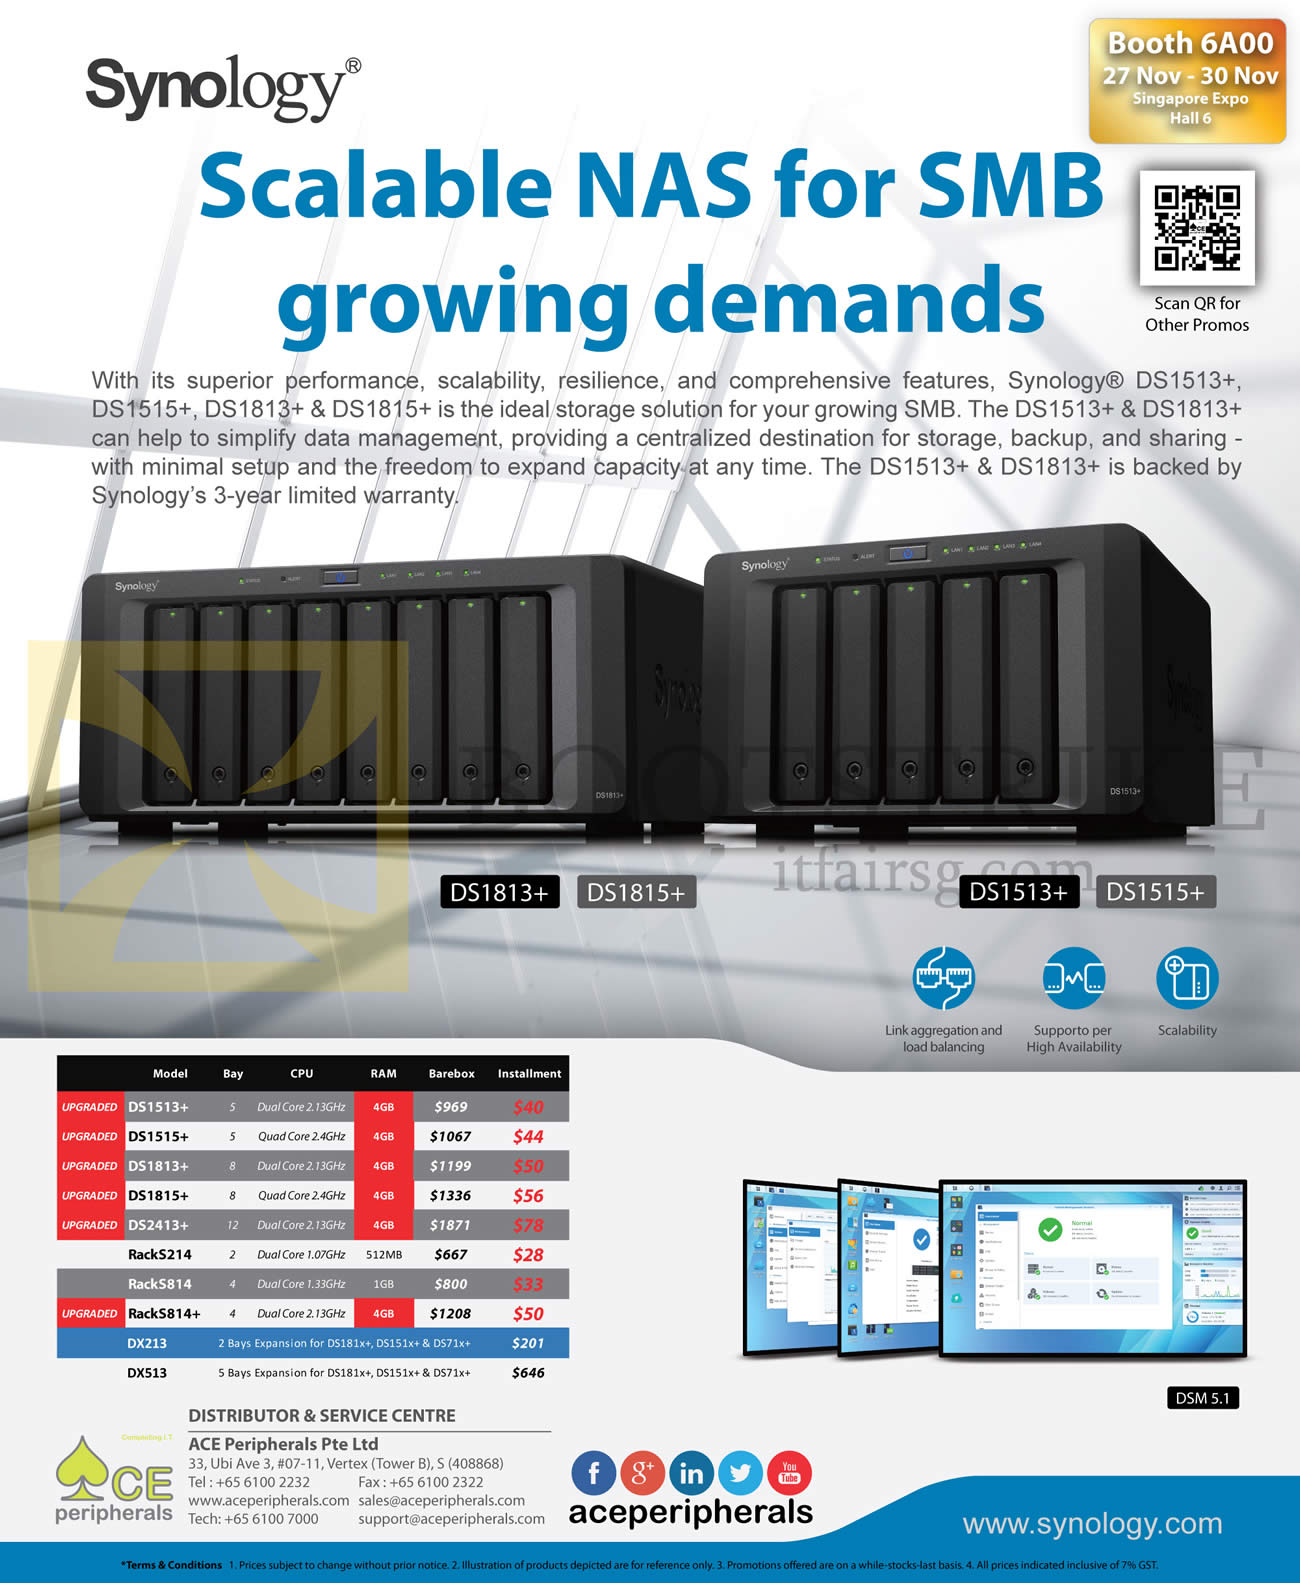 SITEX 2014 price list image brochure of Ace Peripherals Synology DiskStation DS1513, DS1813, DS2413, RS214, RS814, DX213, DX513, DS1515, DS1815 Plus